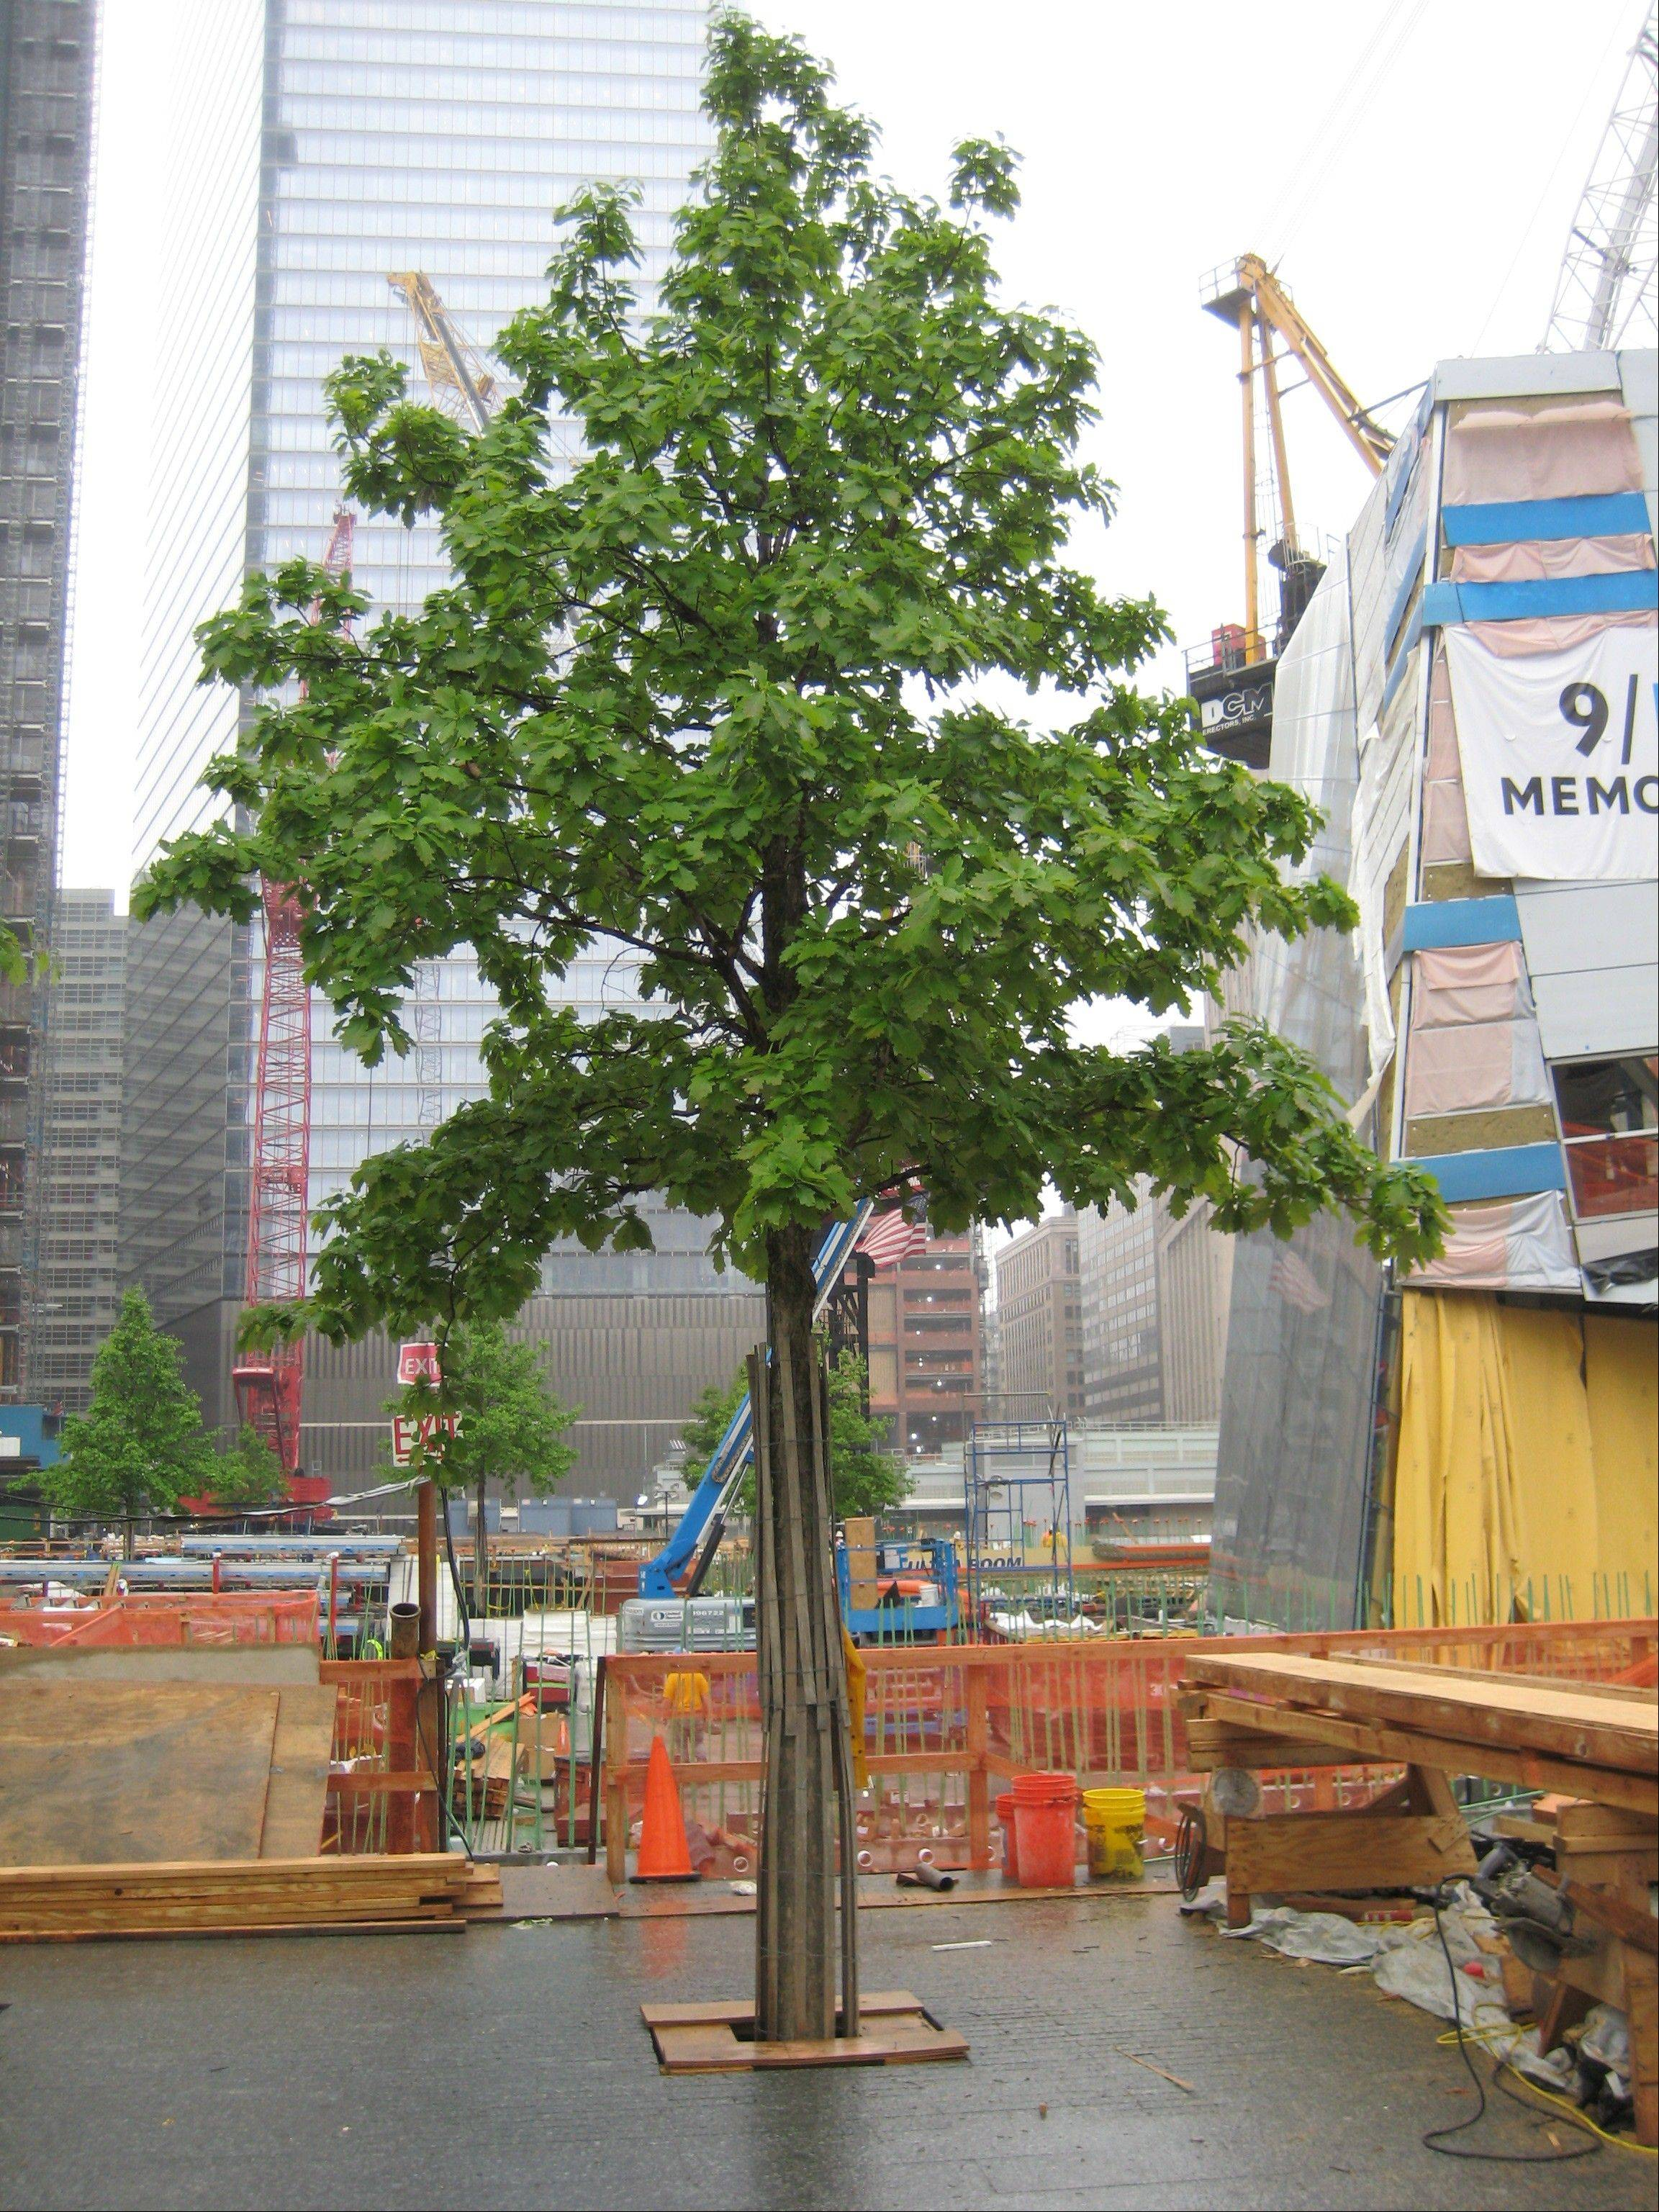 The oak trees soften the appearance of the 9/11 monument in Manhattan.